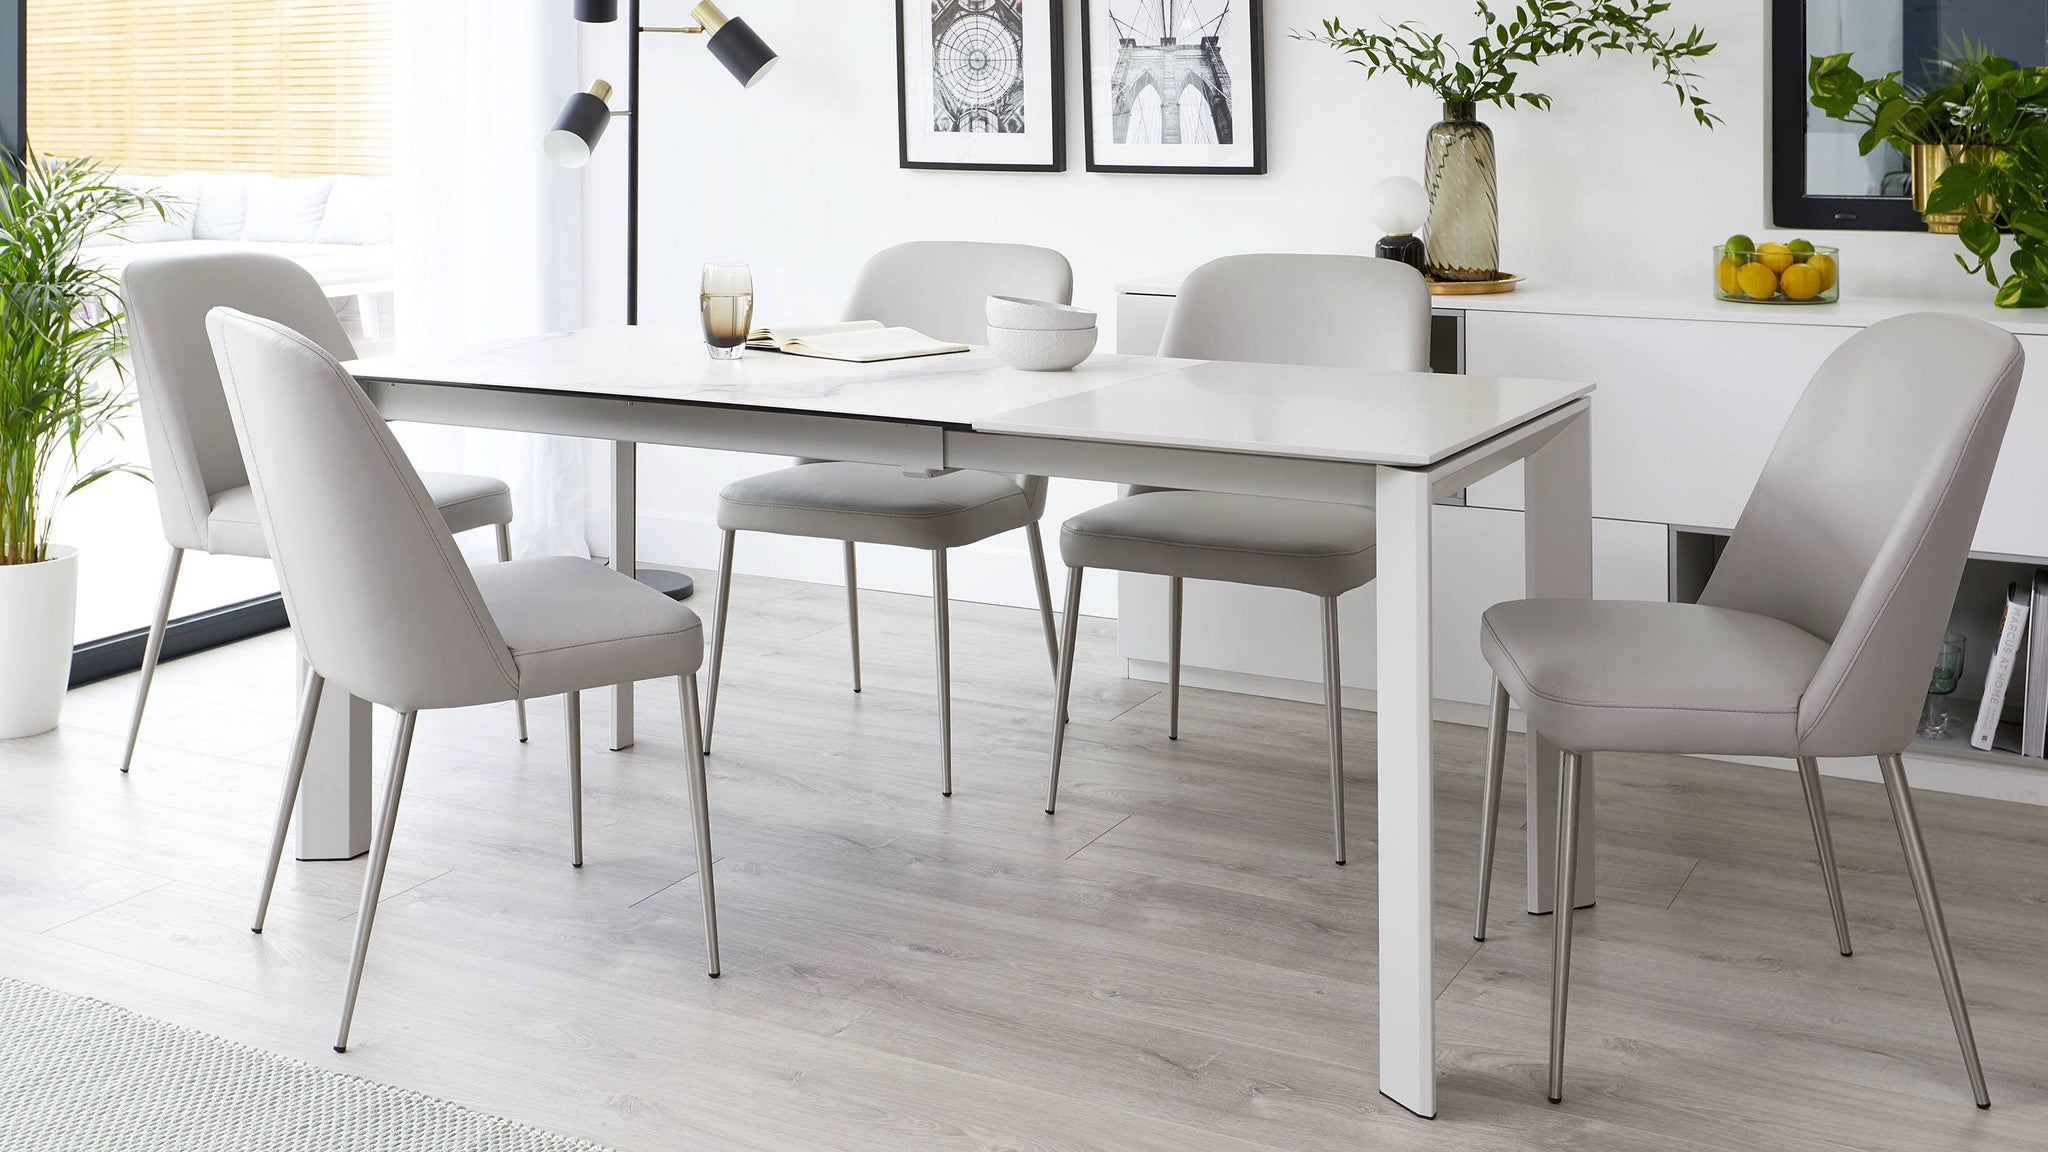 Louis white ceramic extending dining table